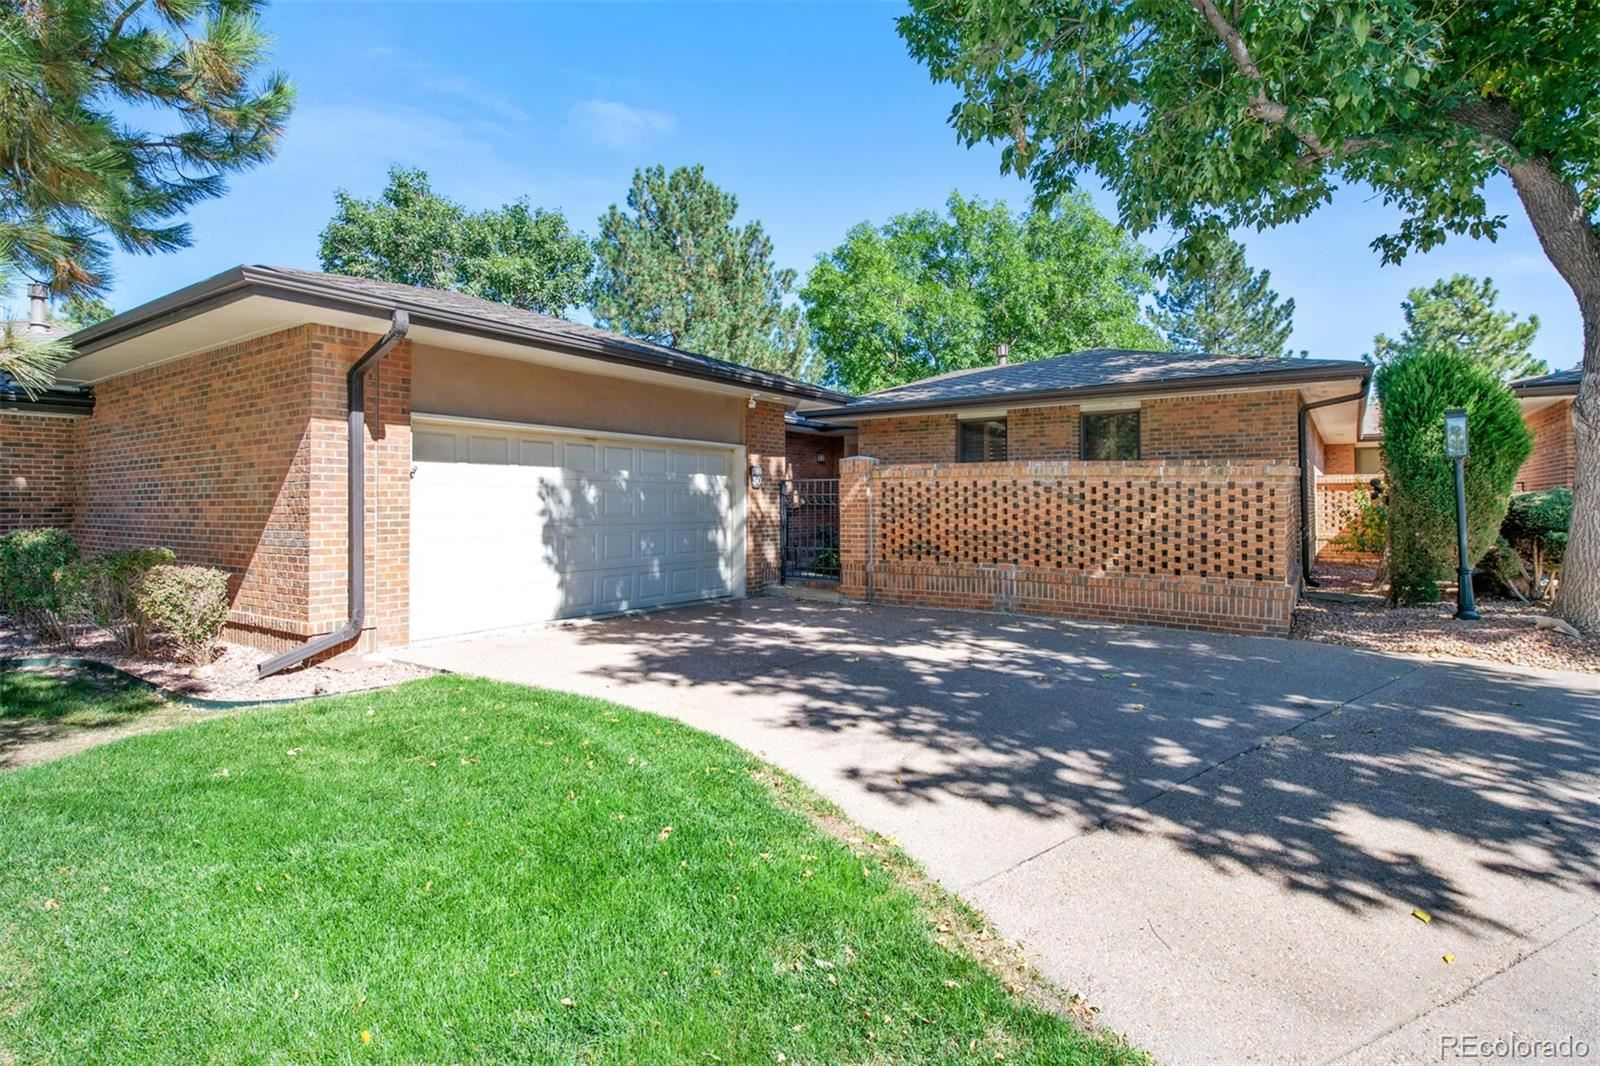 6100 W Mansfield Avenue #30, Denver, CO 80235 - #: 8640054